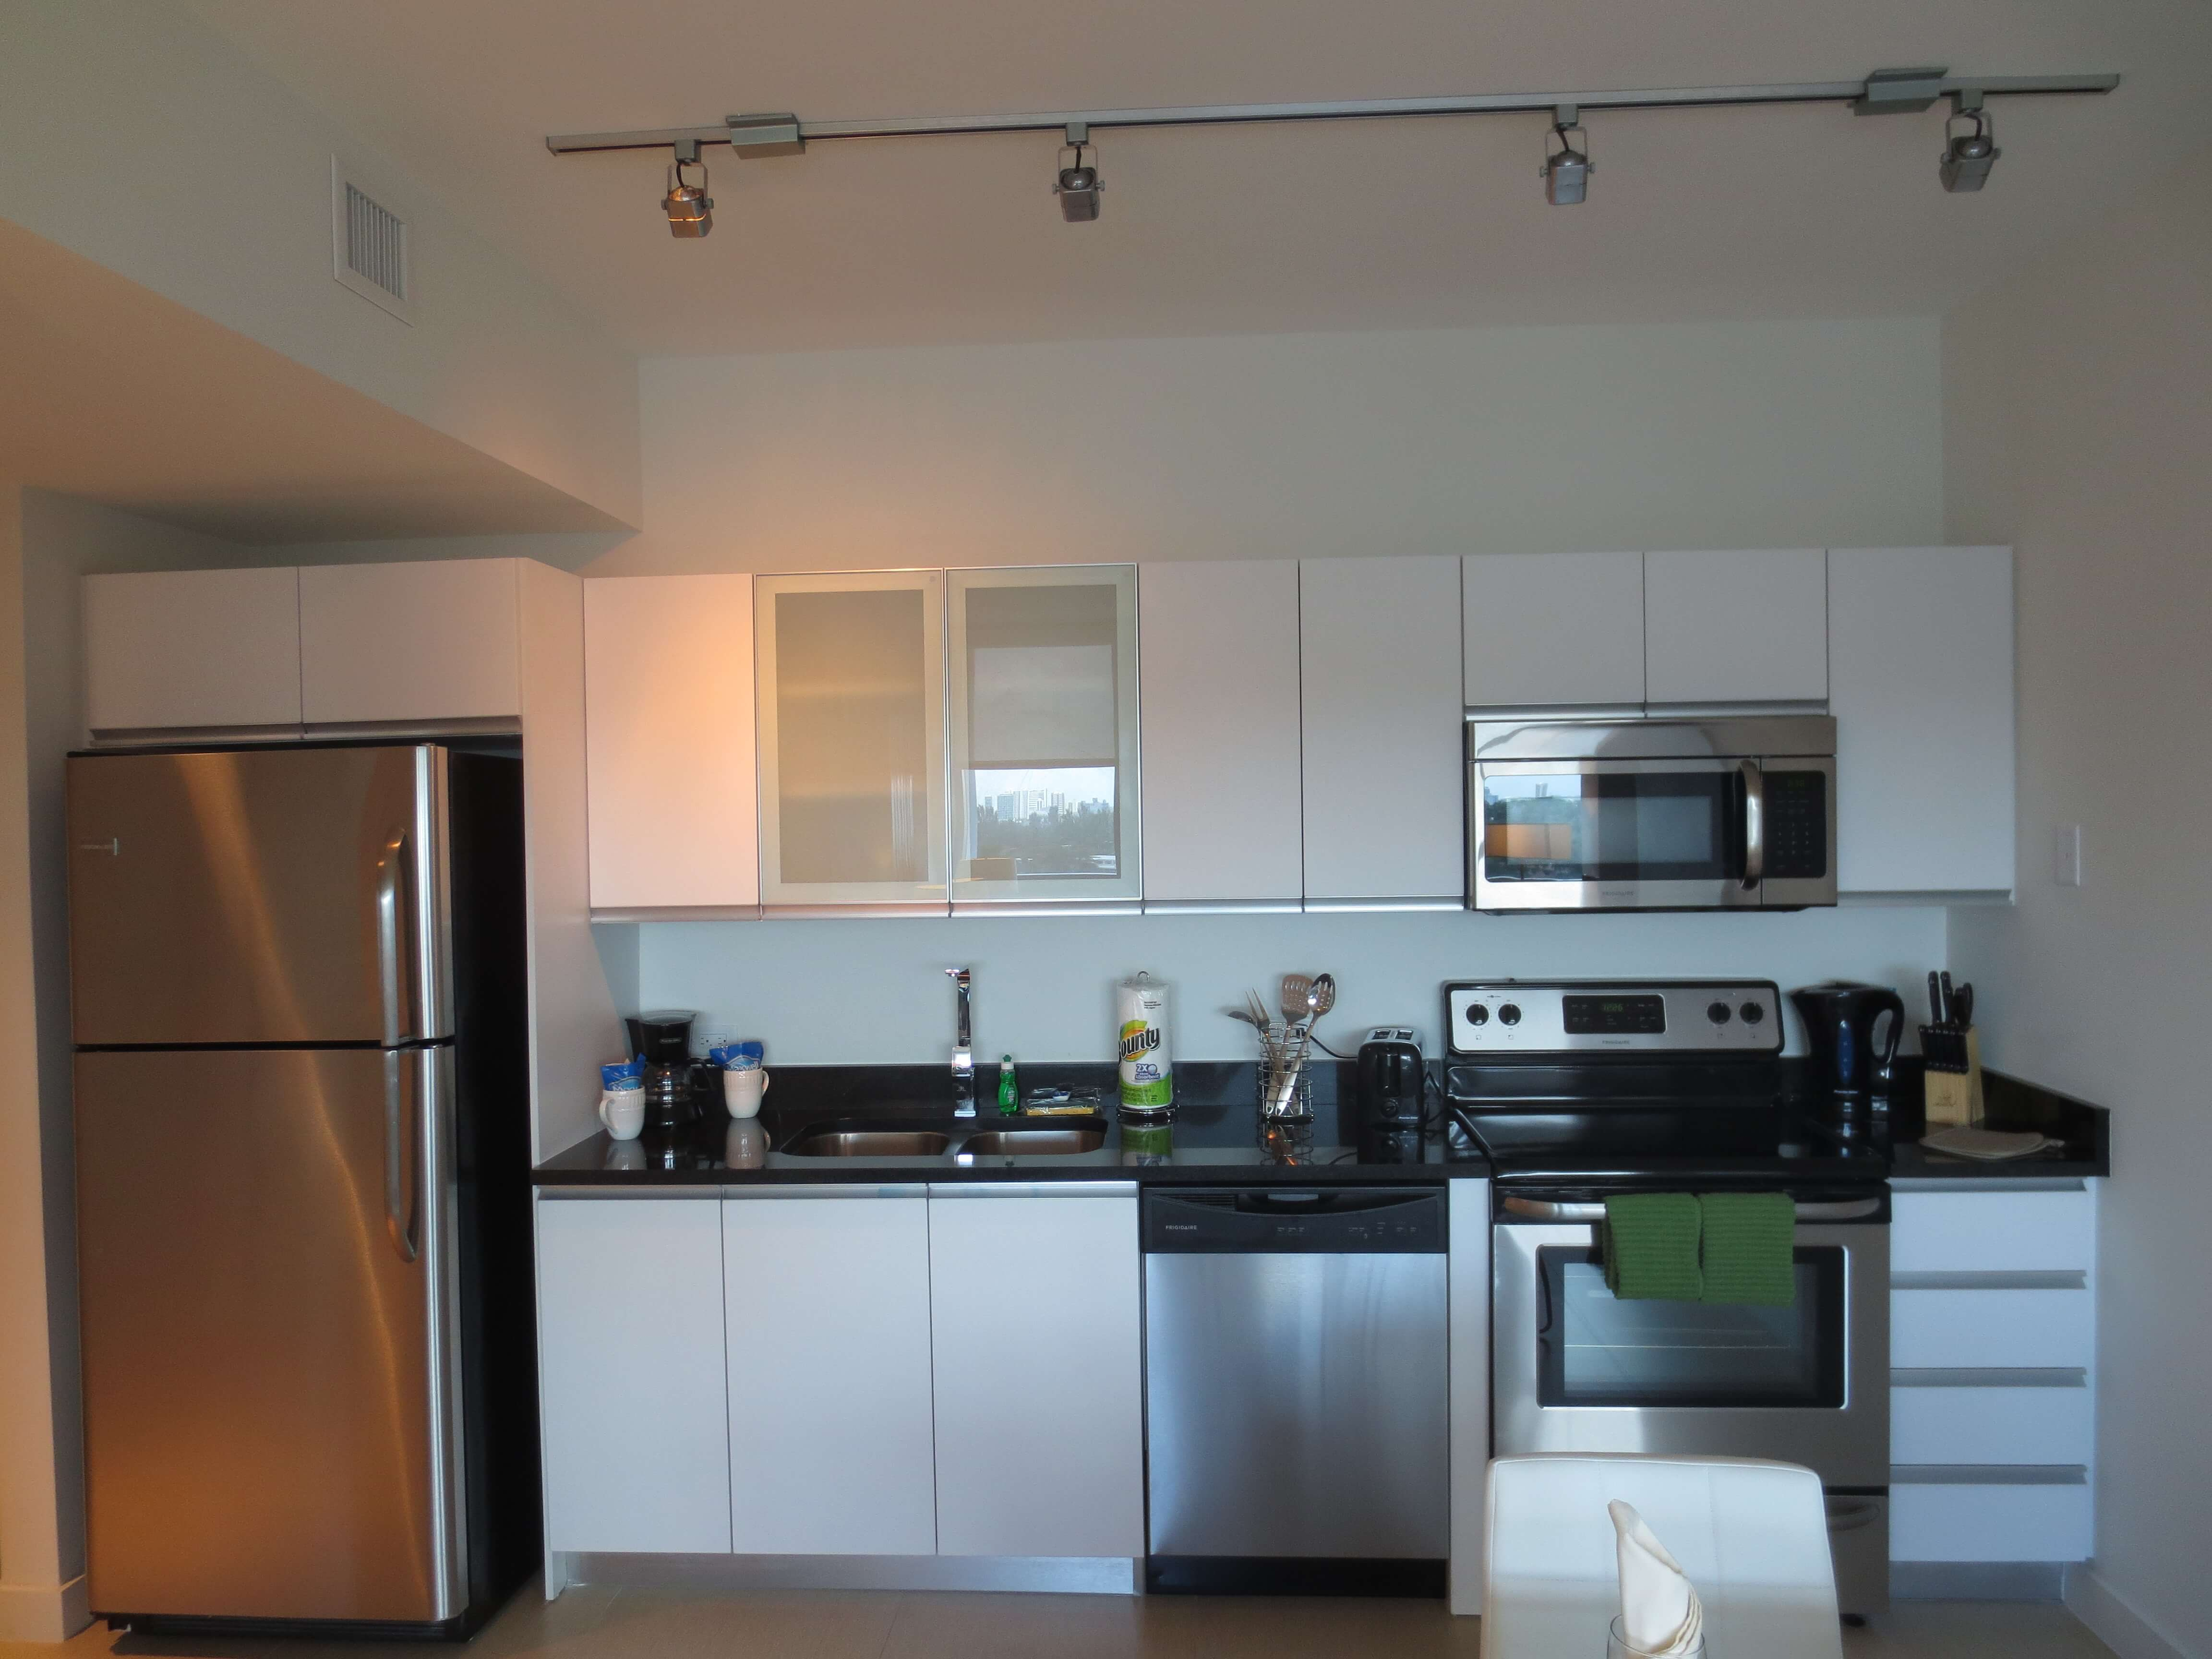 image 4 furnished 1 bedroom Apartment for rent in North Miami Beach, Miami Area